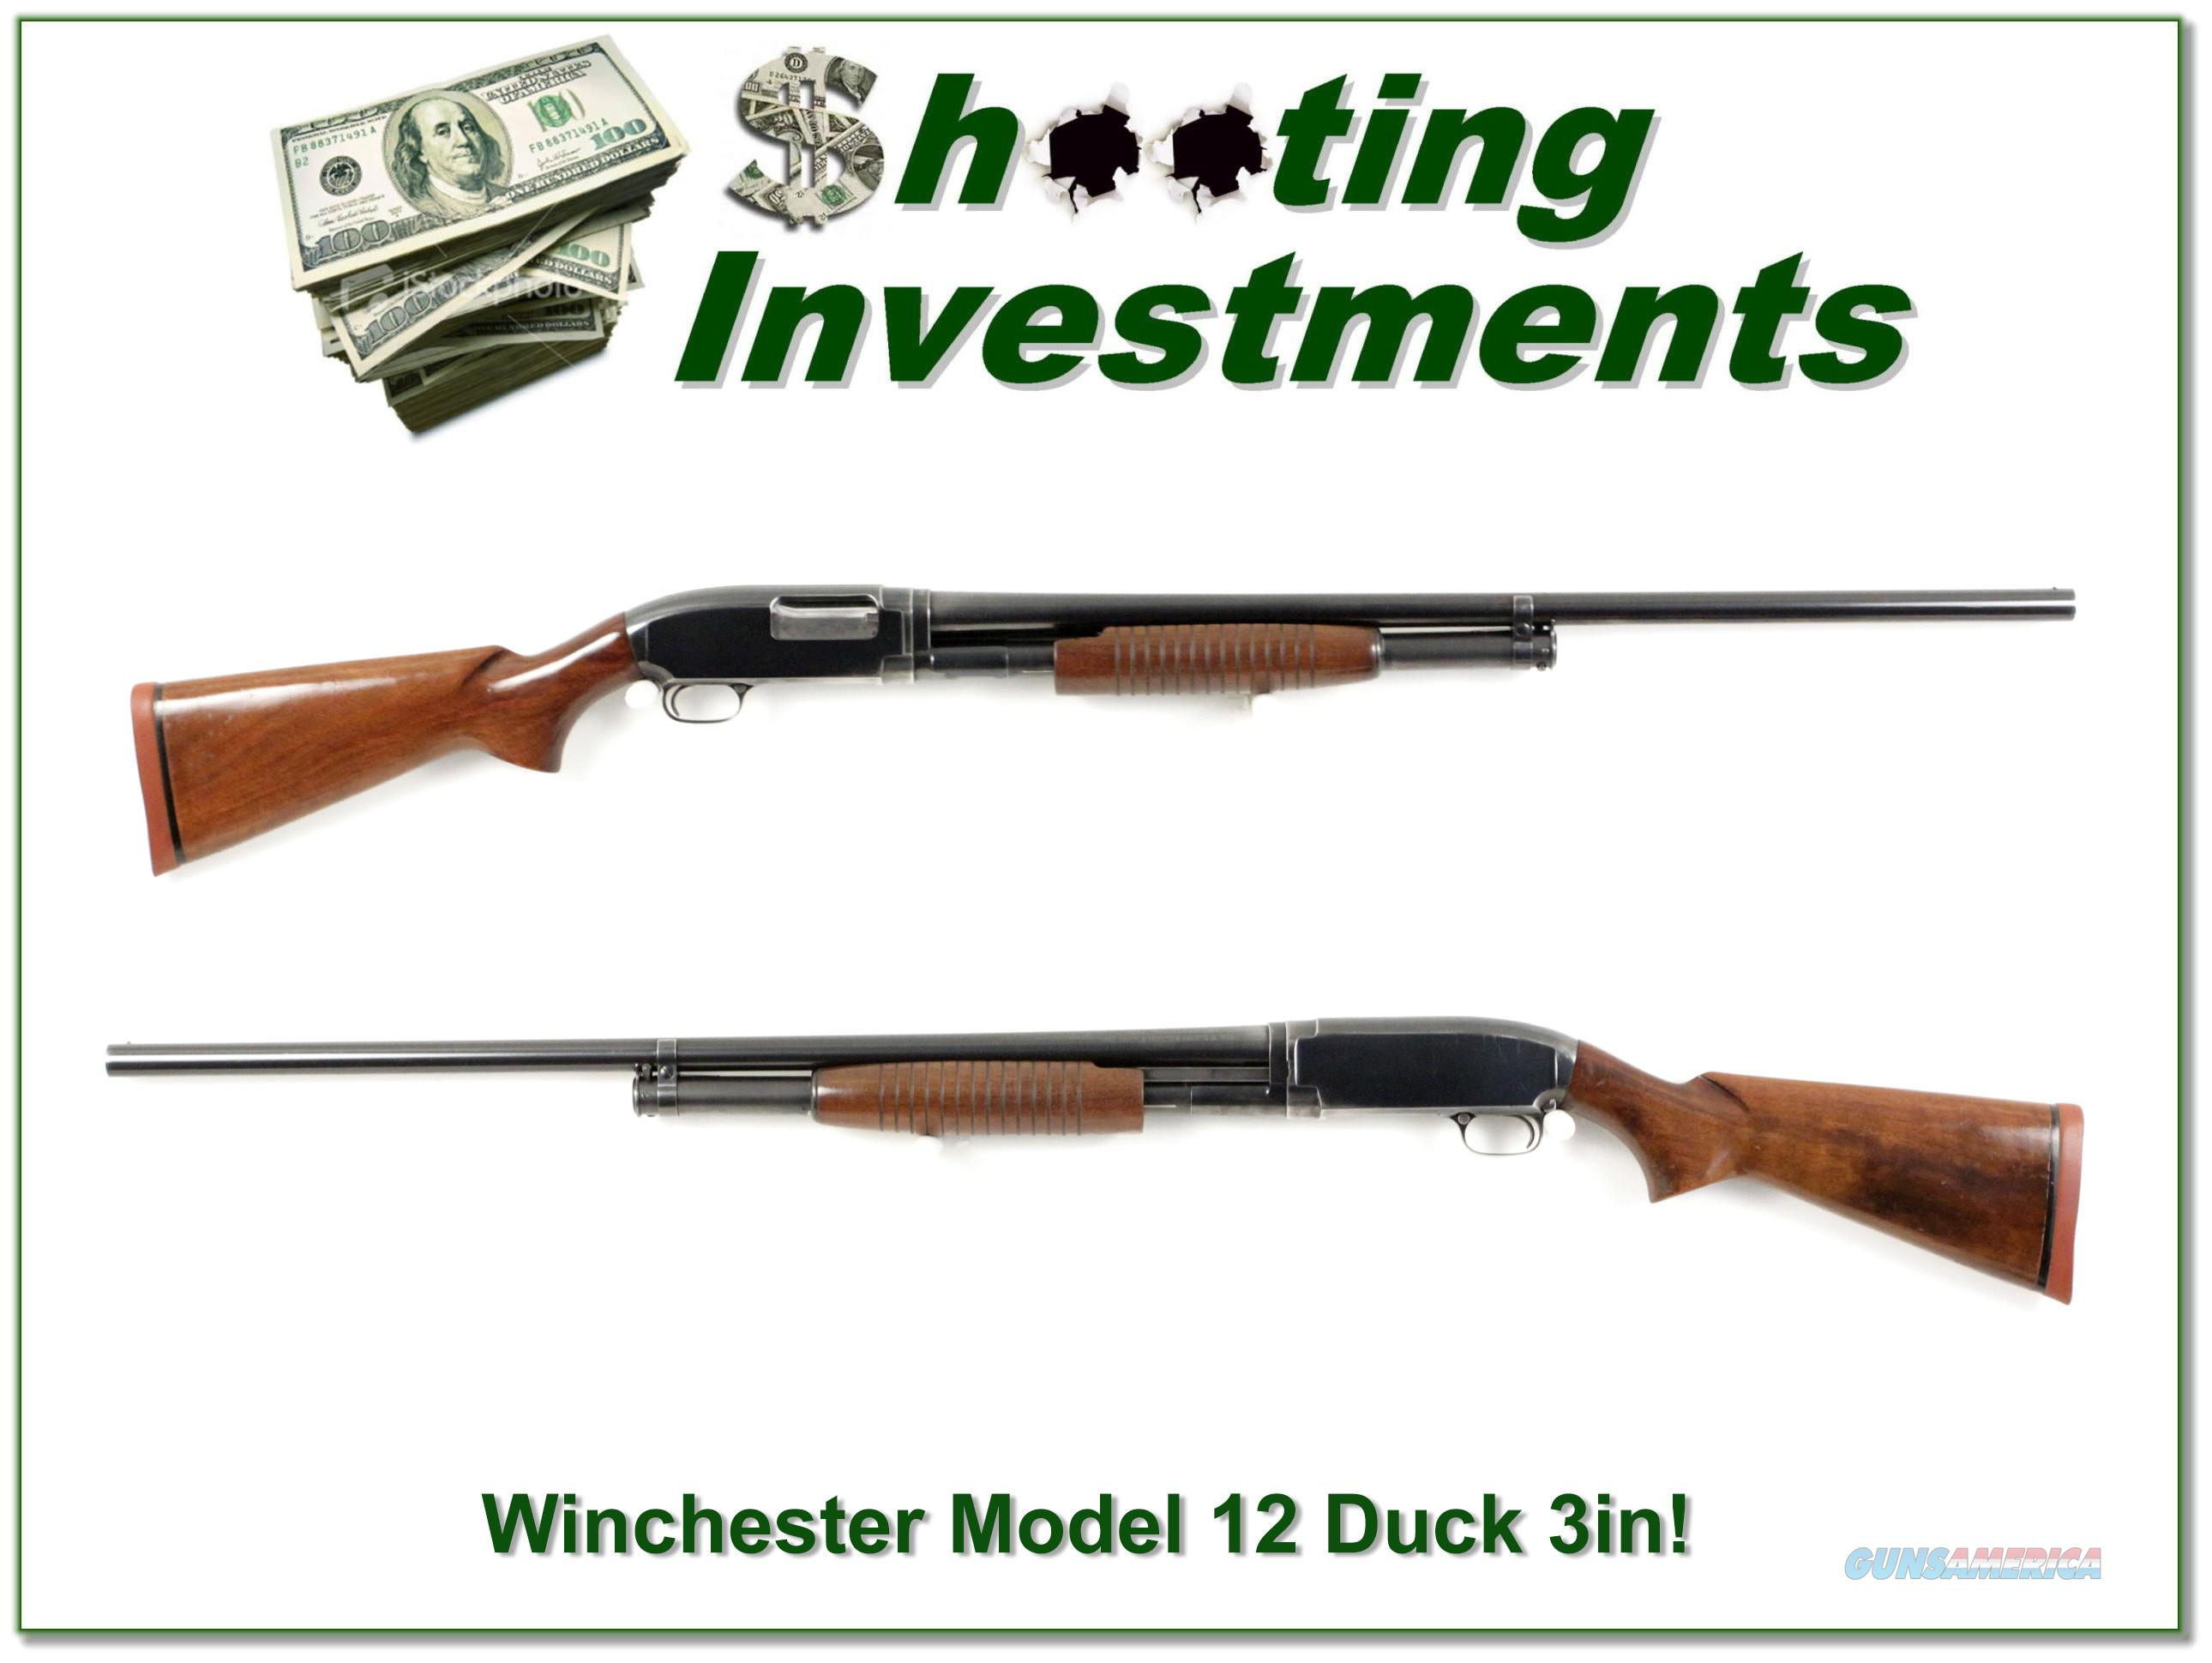 Winchester Model 12 3in Duck made in 1957  Guns > Shotguns > Winchester Shotguns - Modern > Pump Action > Hunting